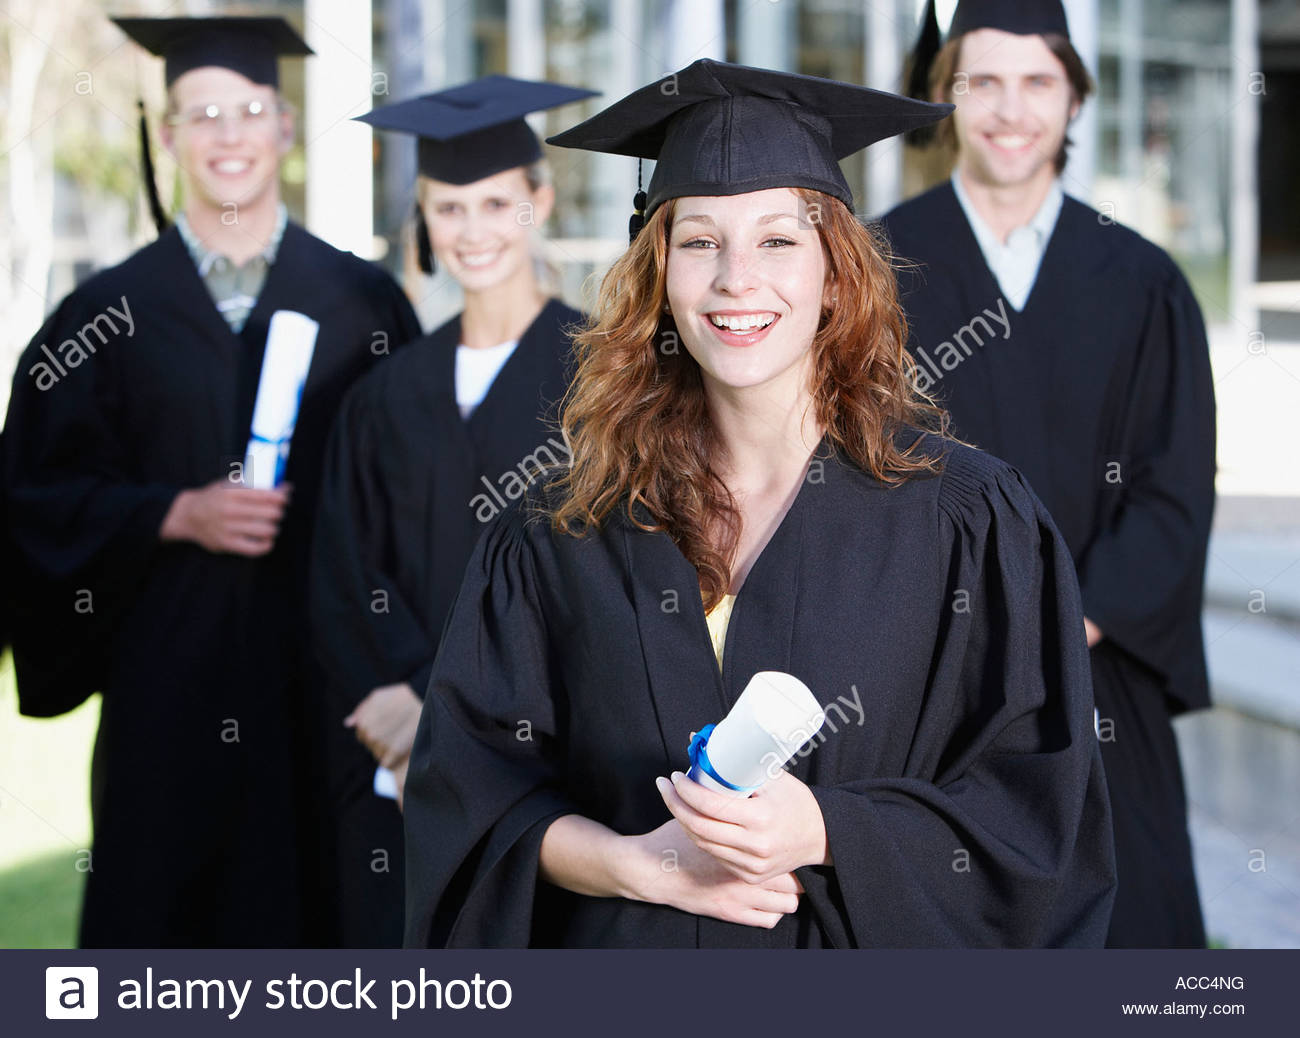 Teenagers in graduation gowns and mortar boards with diplomas - Stock Image